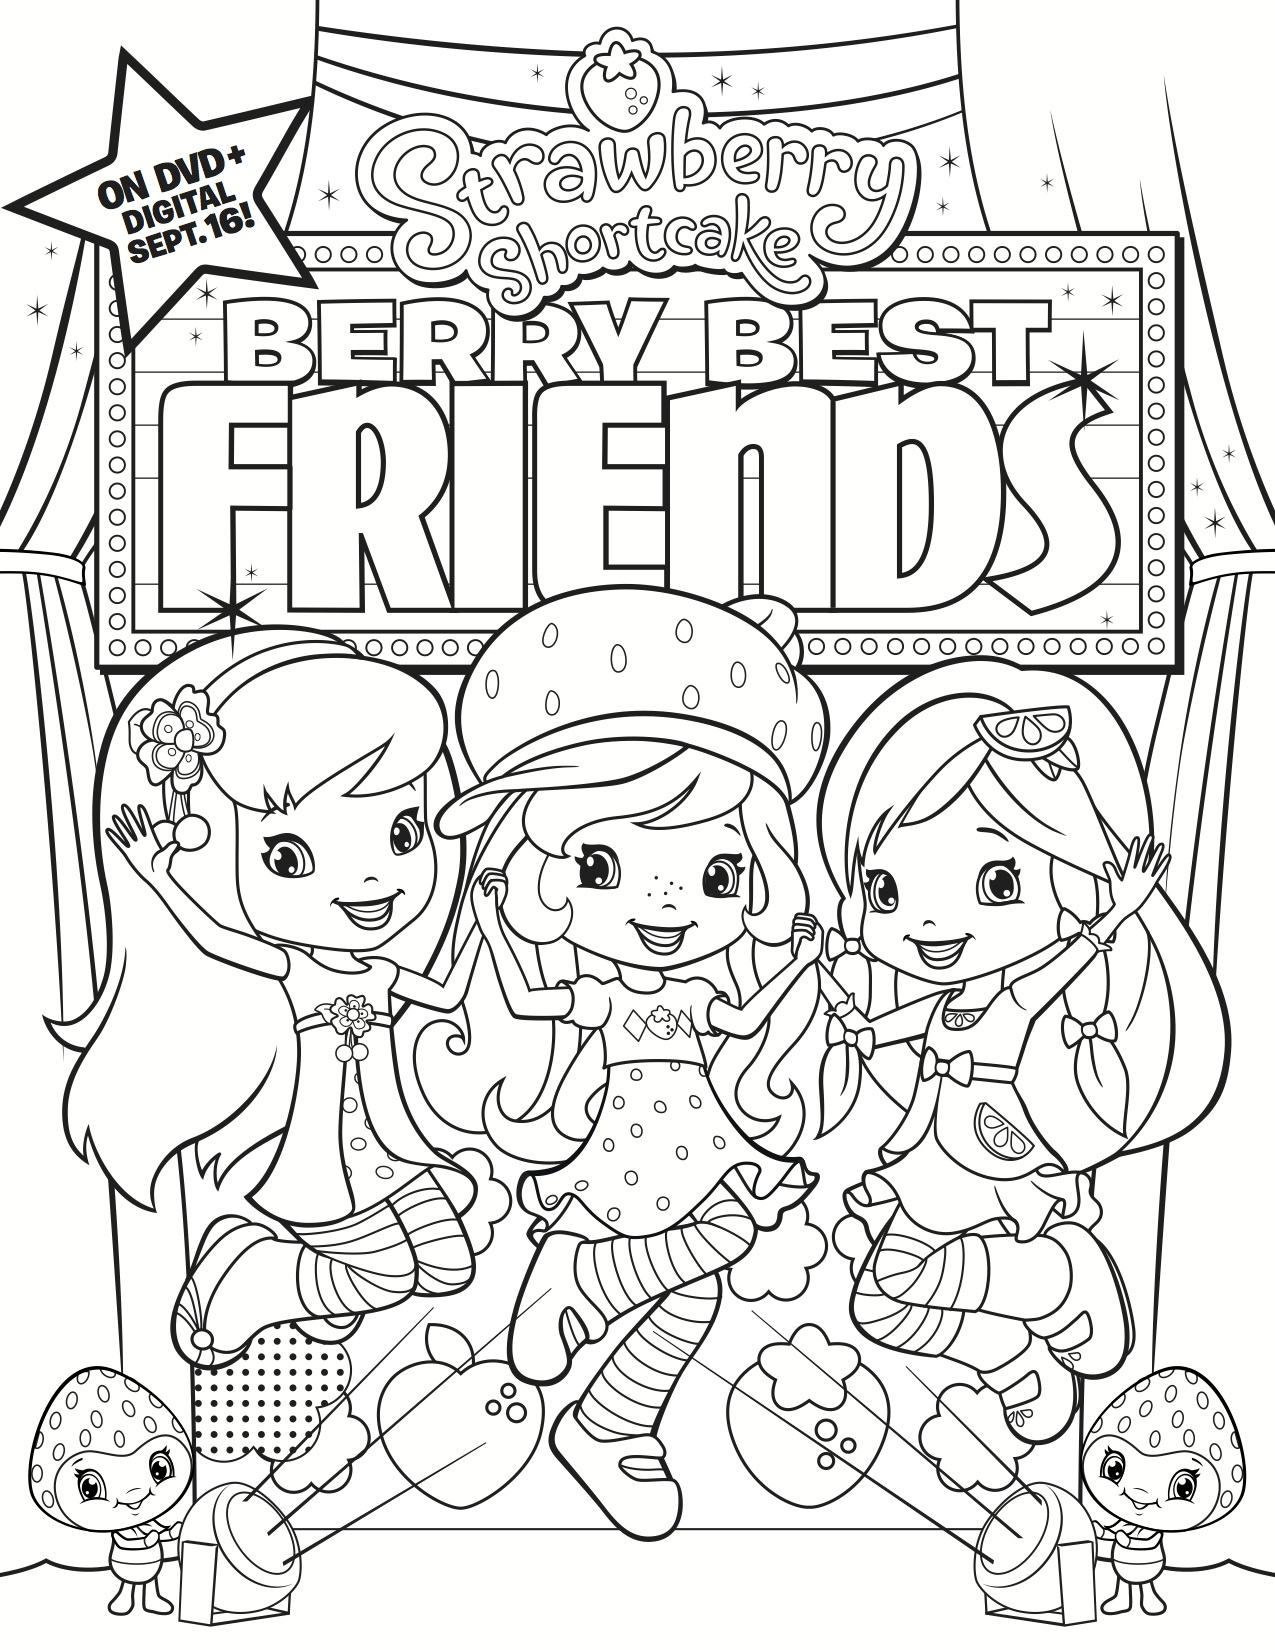 Strawberry Shortcake: Berry Best Friends available on DVD